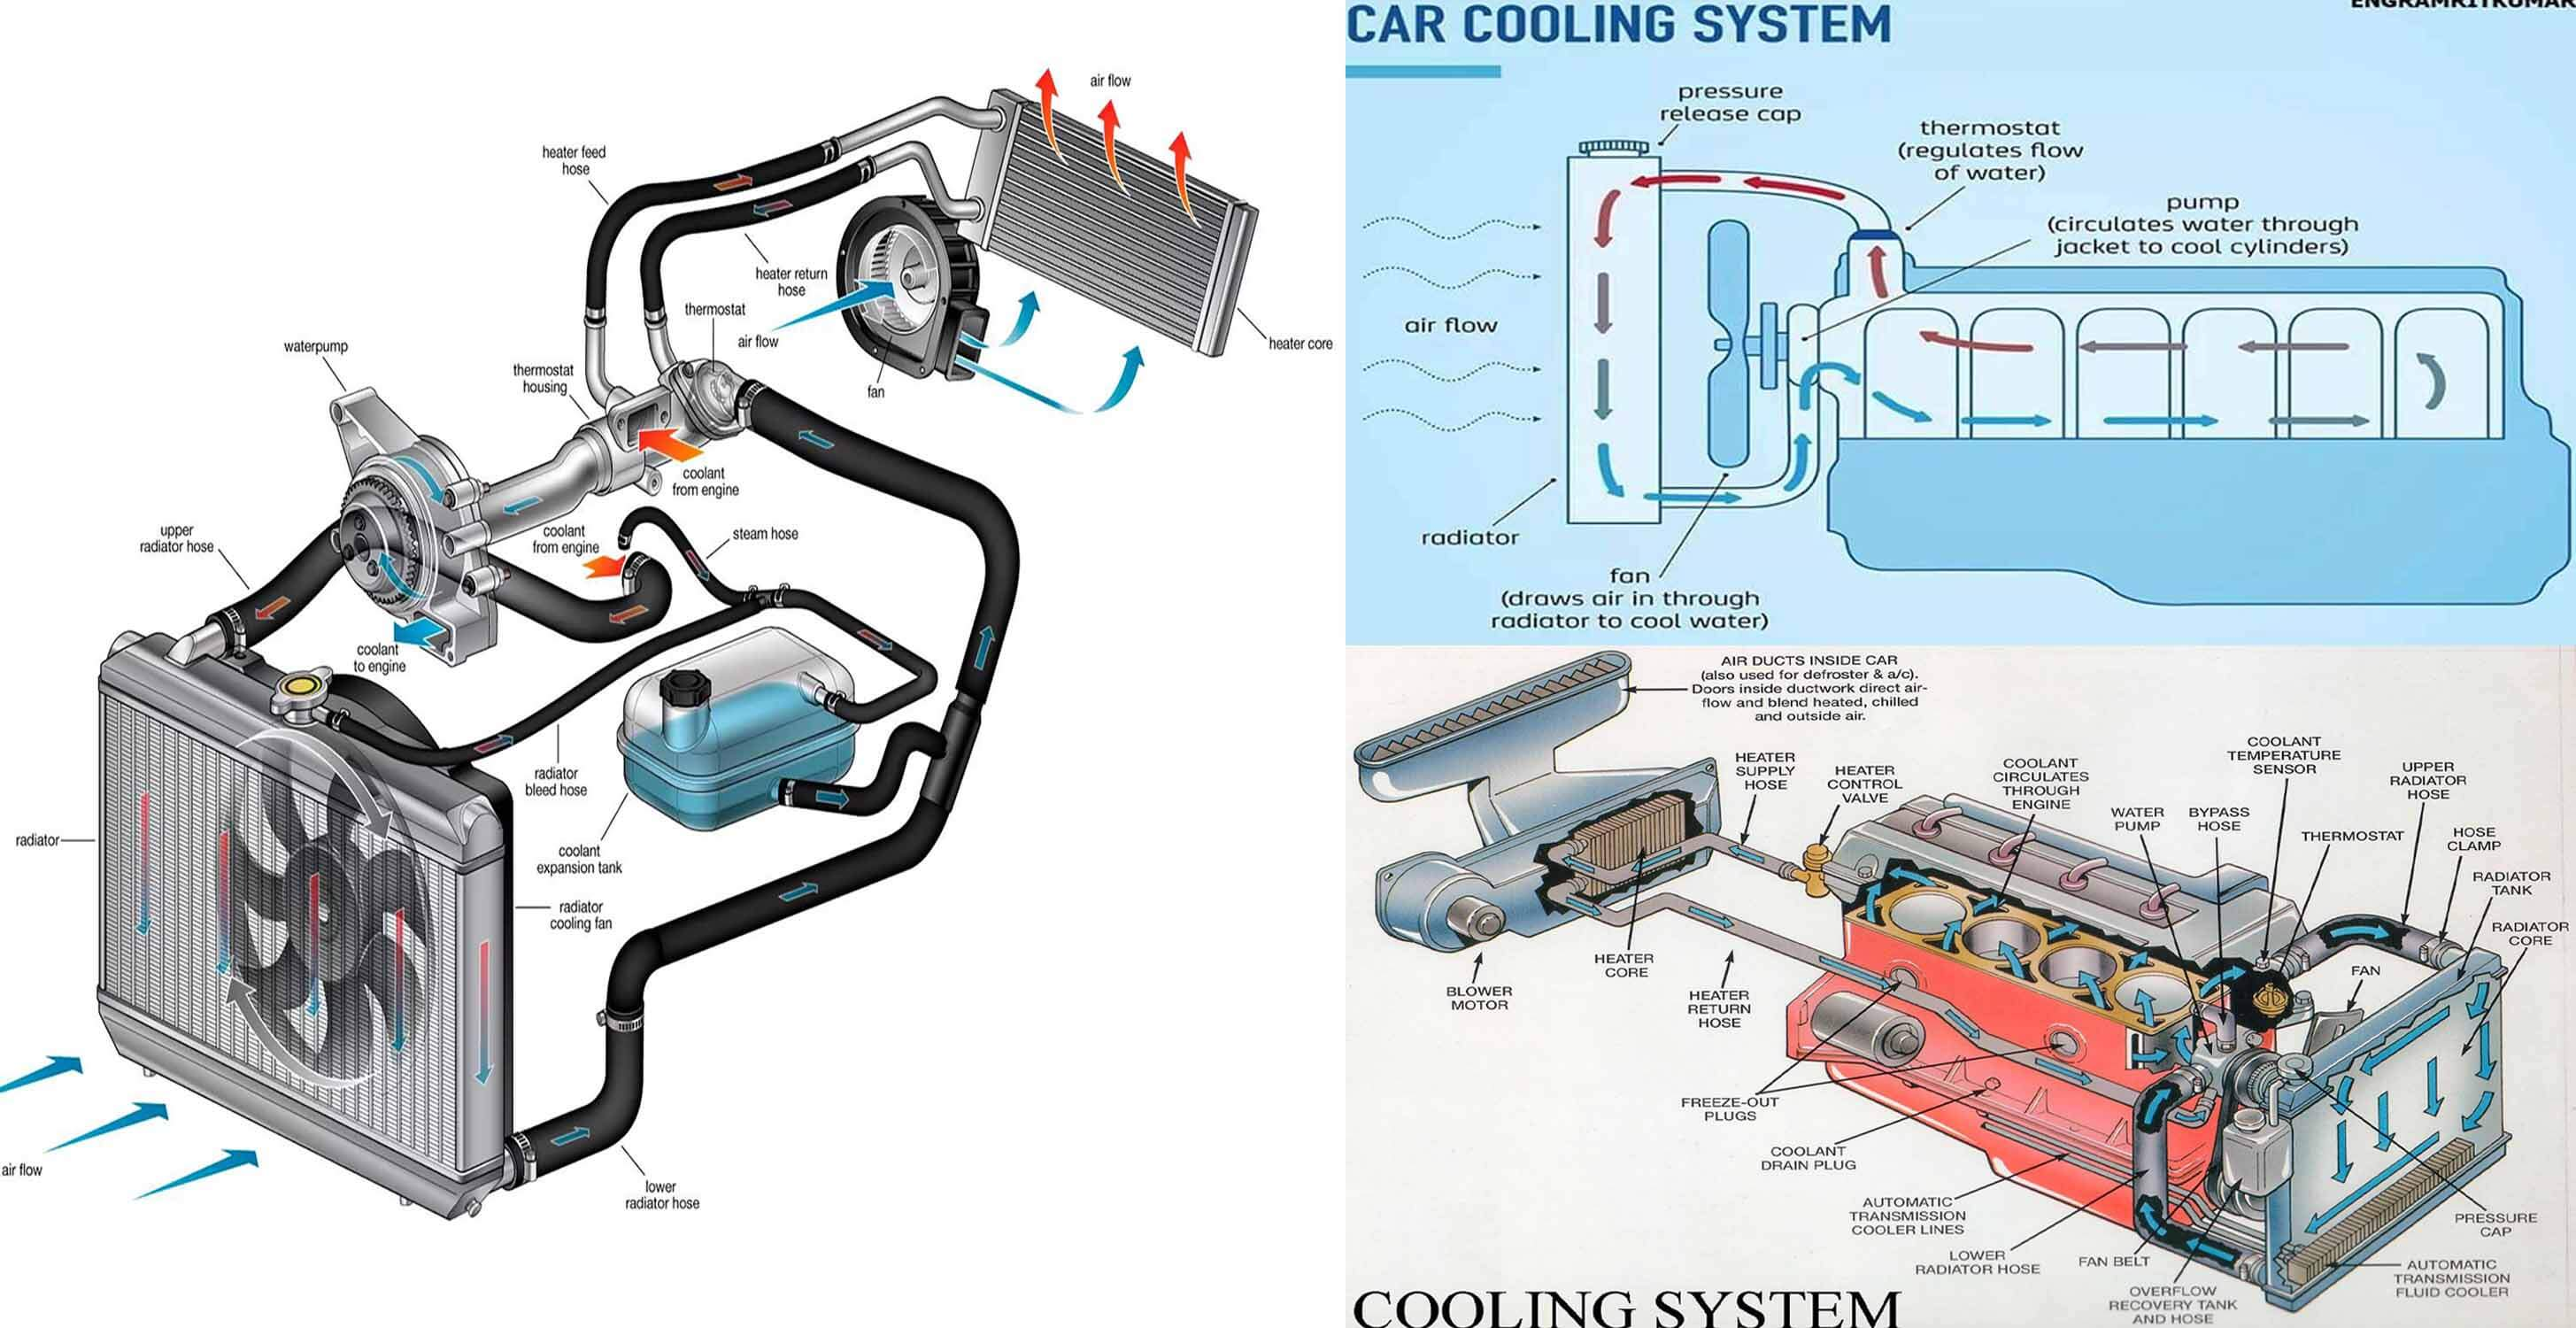 how engine cooling system works? engineering discoveriesa car engine produces a lot of heat when it is running, and must be cooled continuously to avoid engine damage generally this is done by circulating